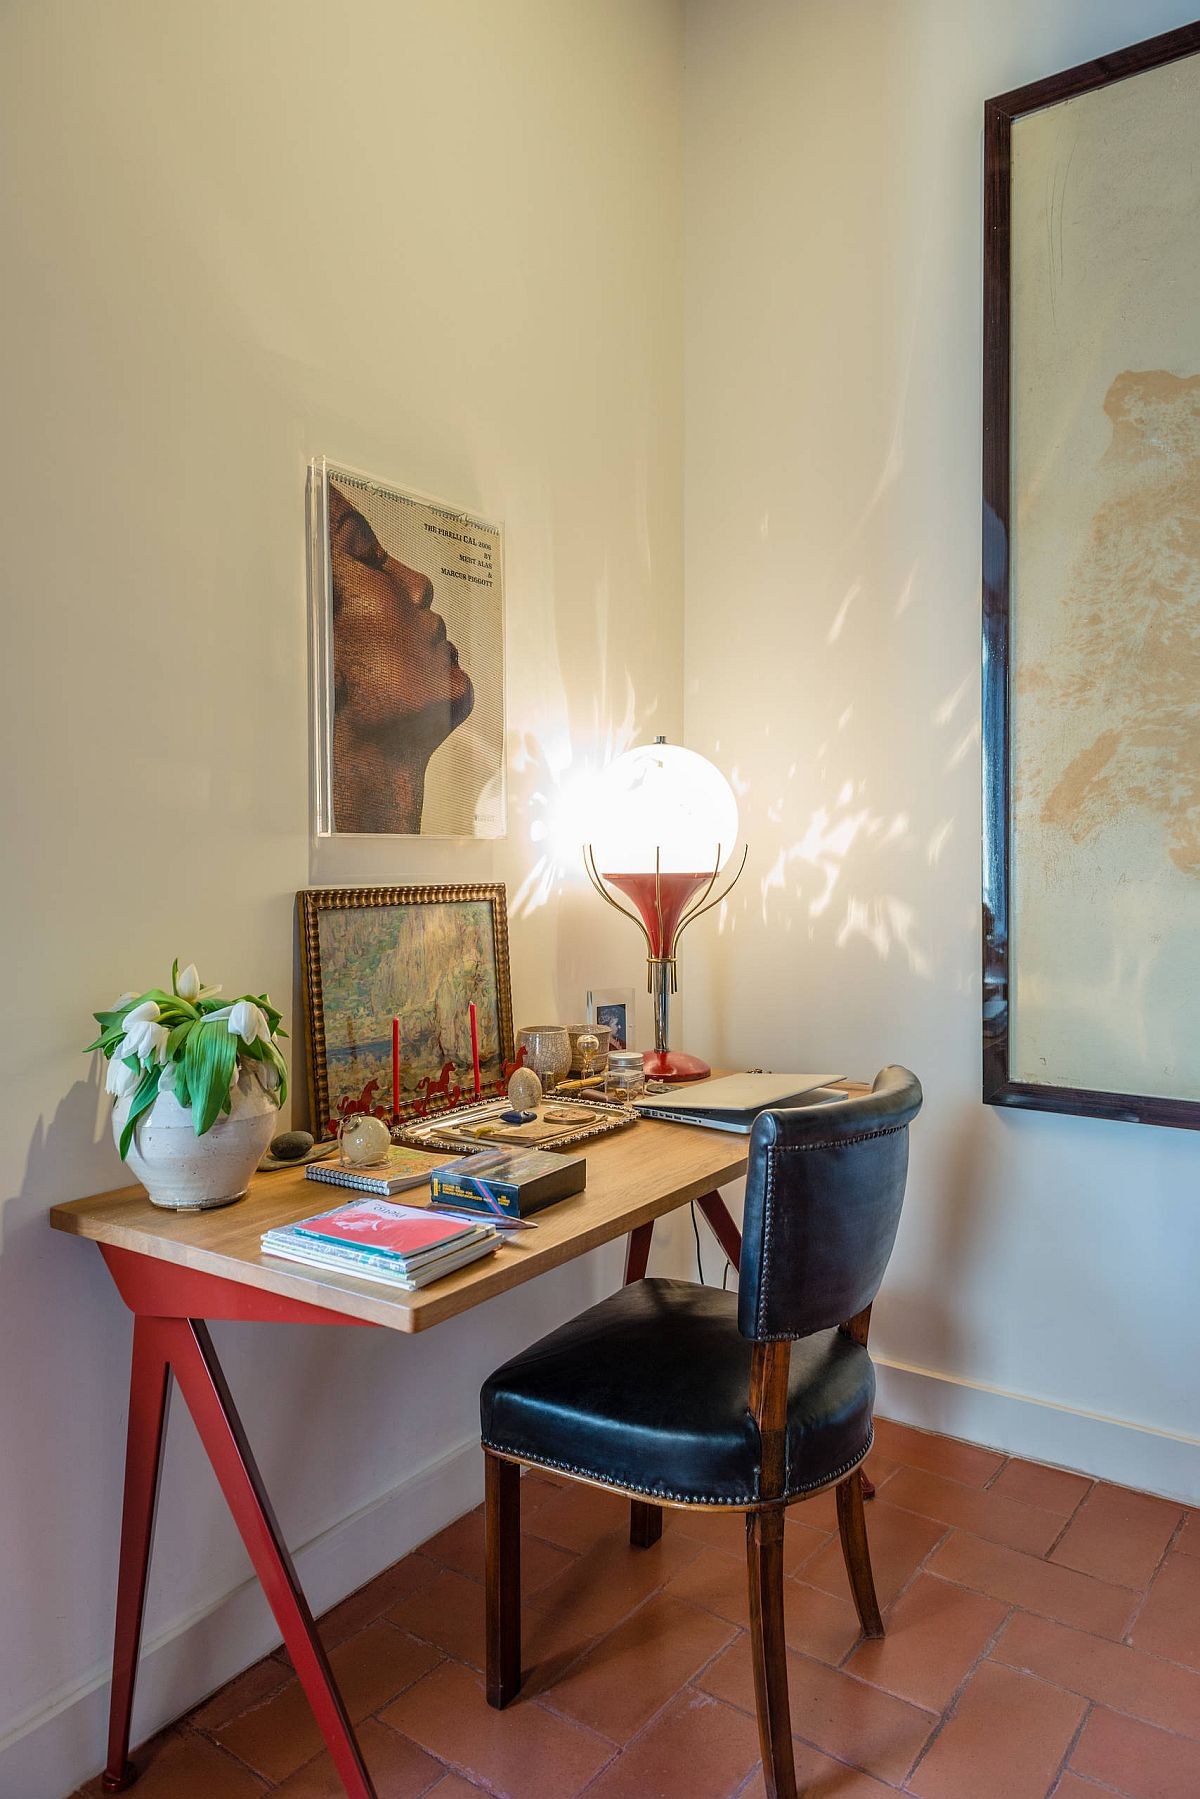 Lighting makes a big imapct in the small eclectic home office